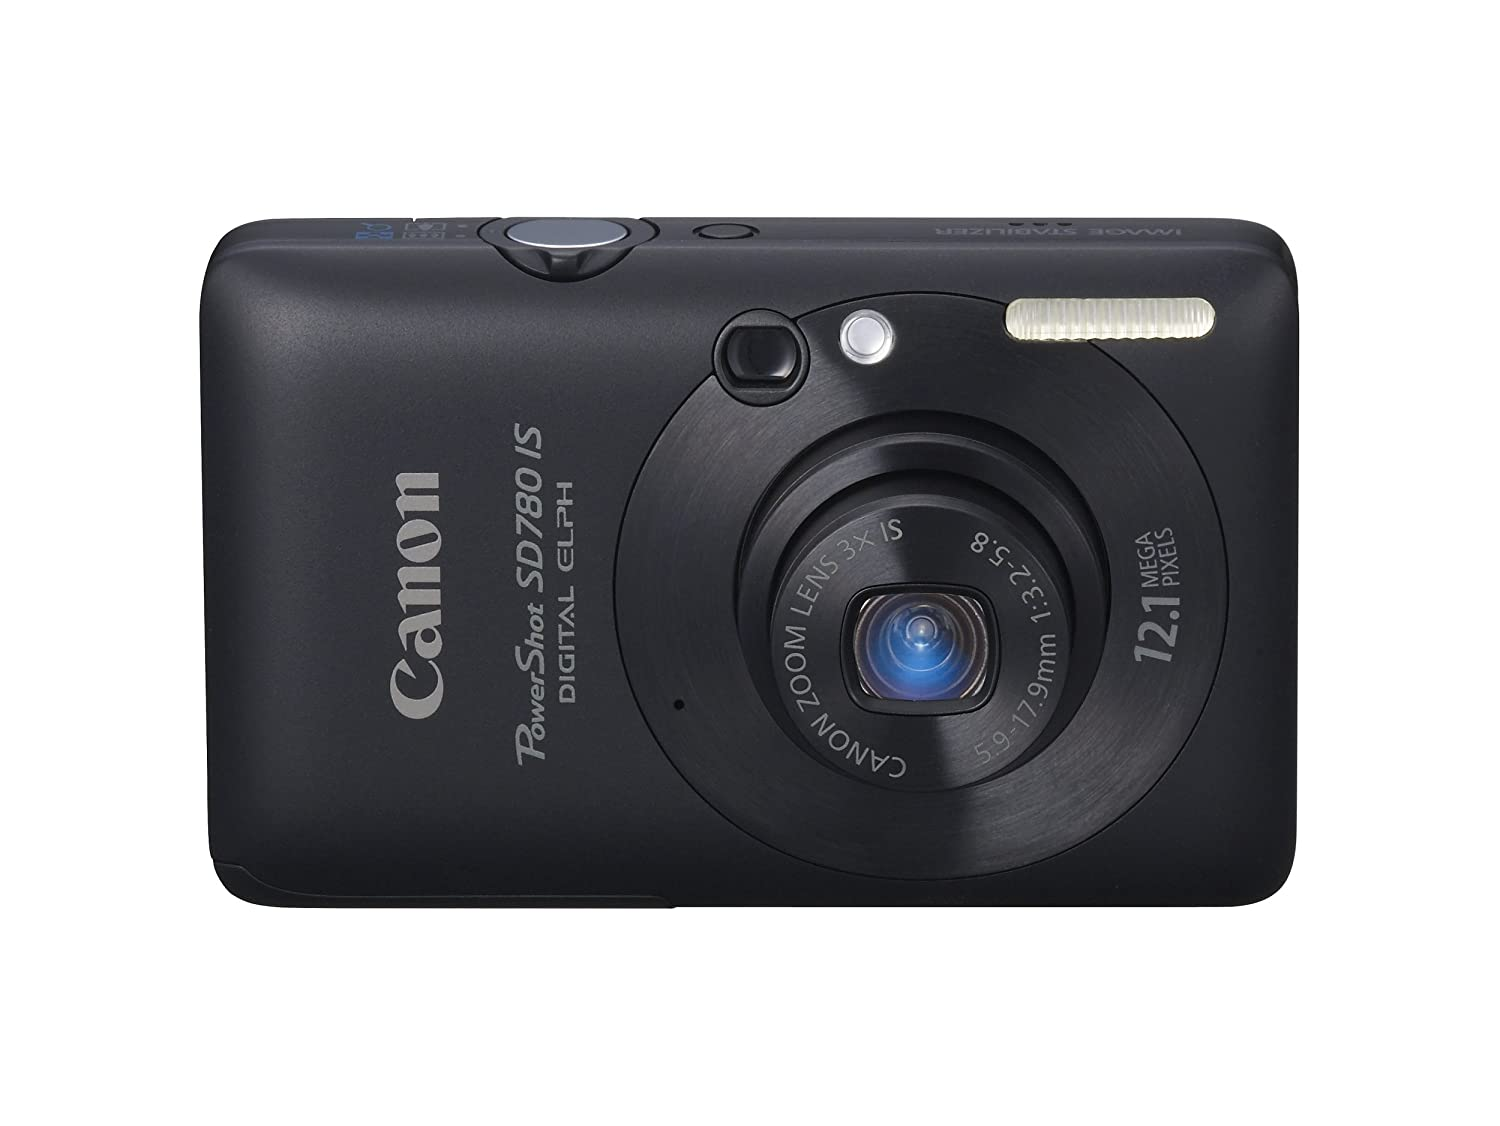 canon powershot sx10is owners manual user guide manual that easy rh sibere co Canon PowerShot SX500 IS canon powershot sx10is owners manual